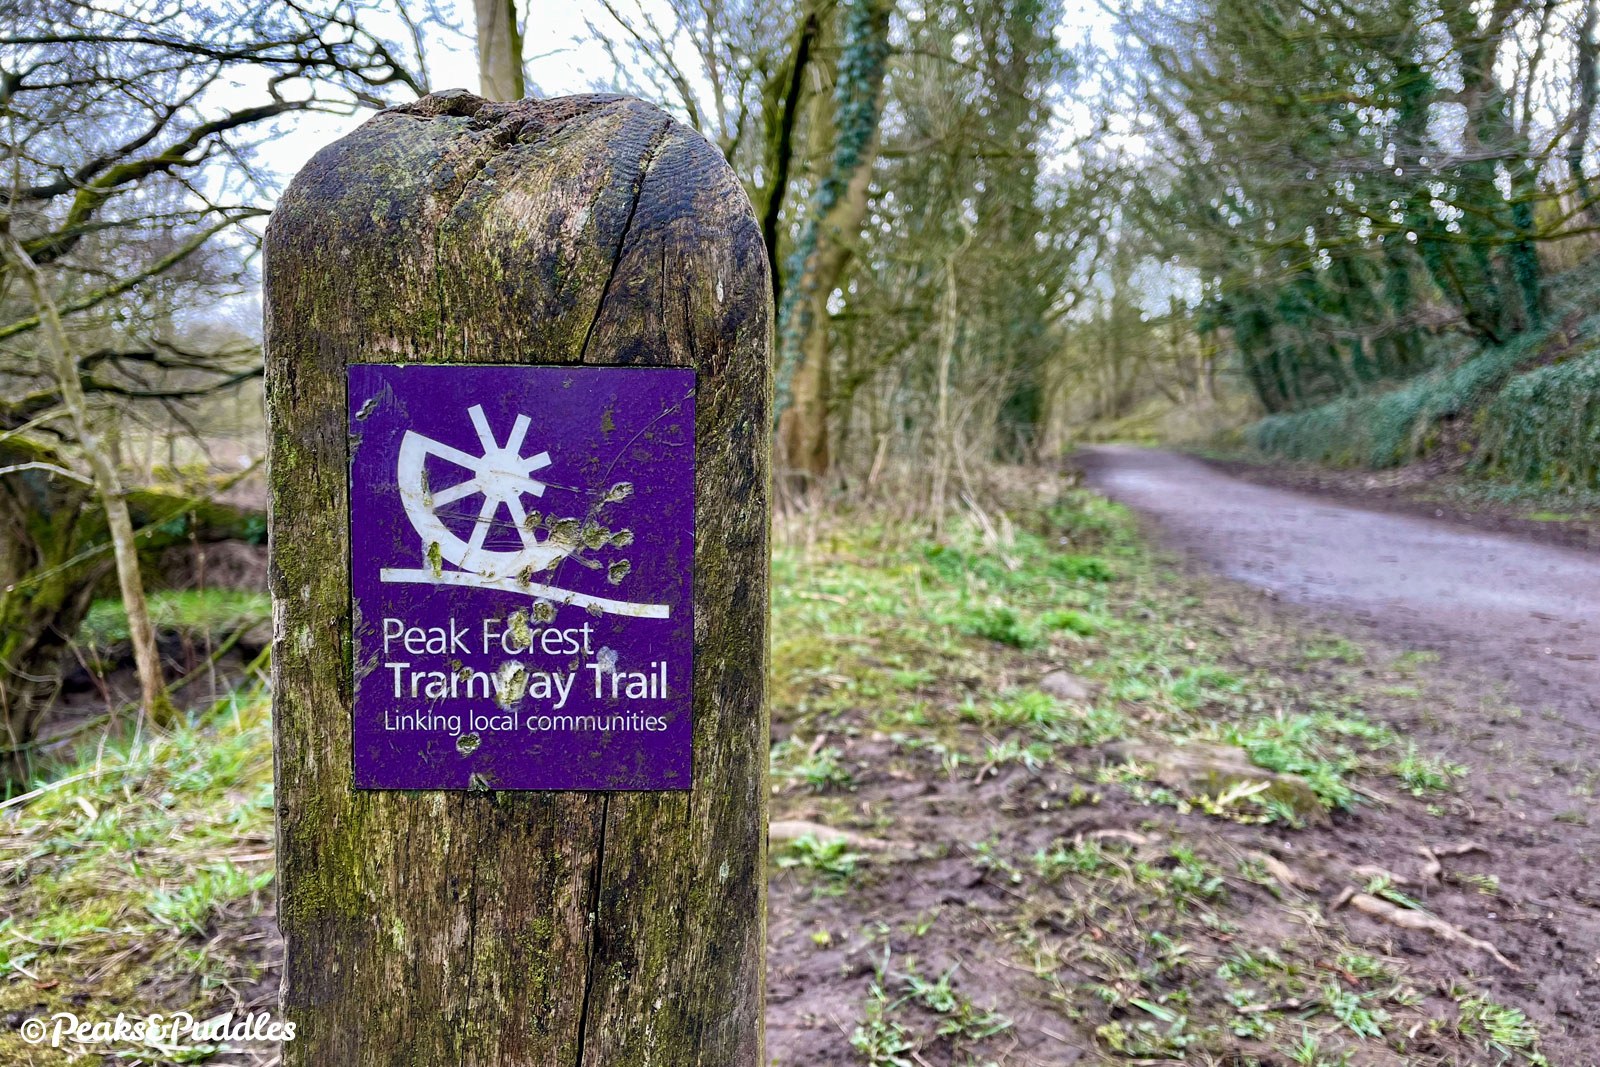 The smart purple signage and interpretation of the trail is beginning to show its age, before the route has even been completed further.